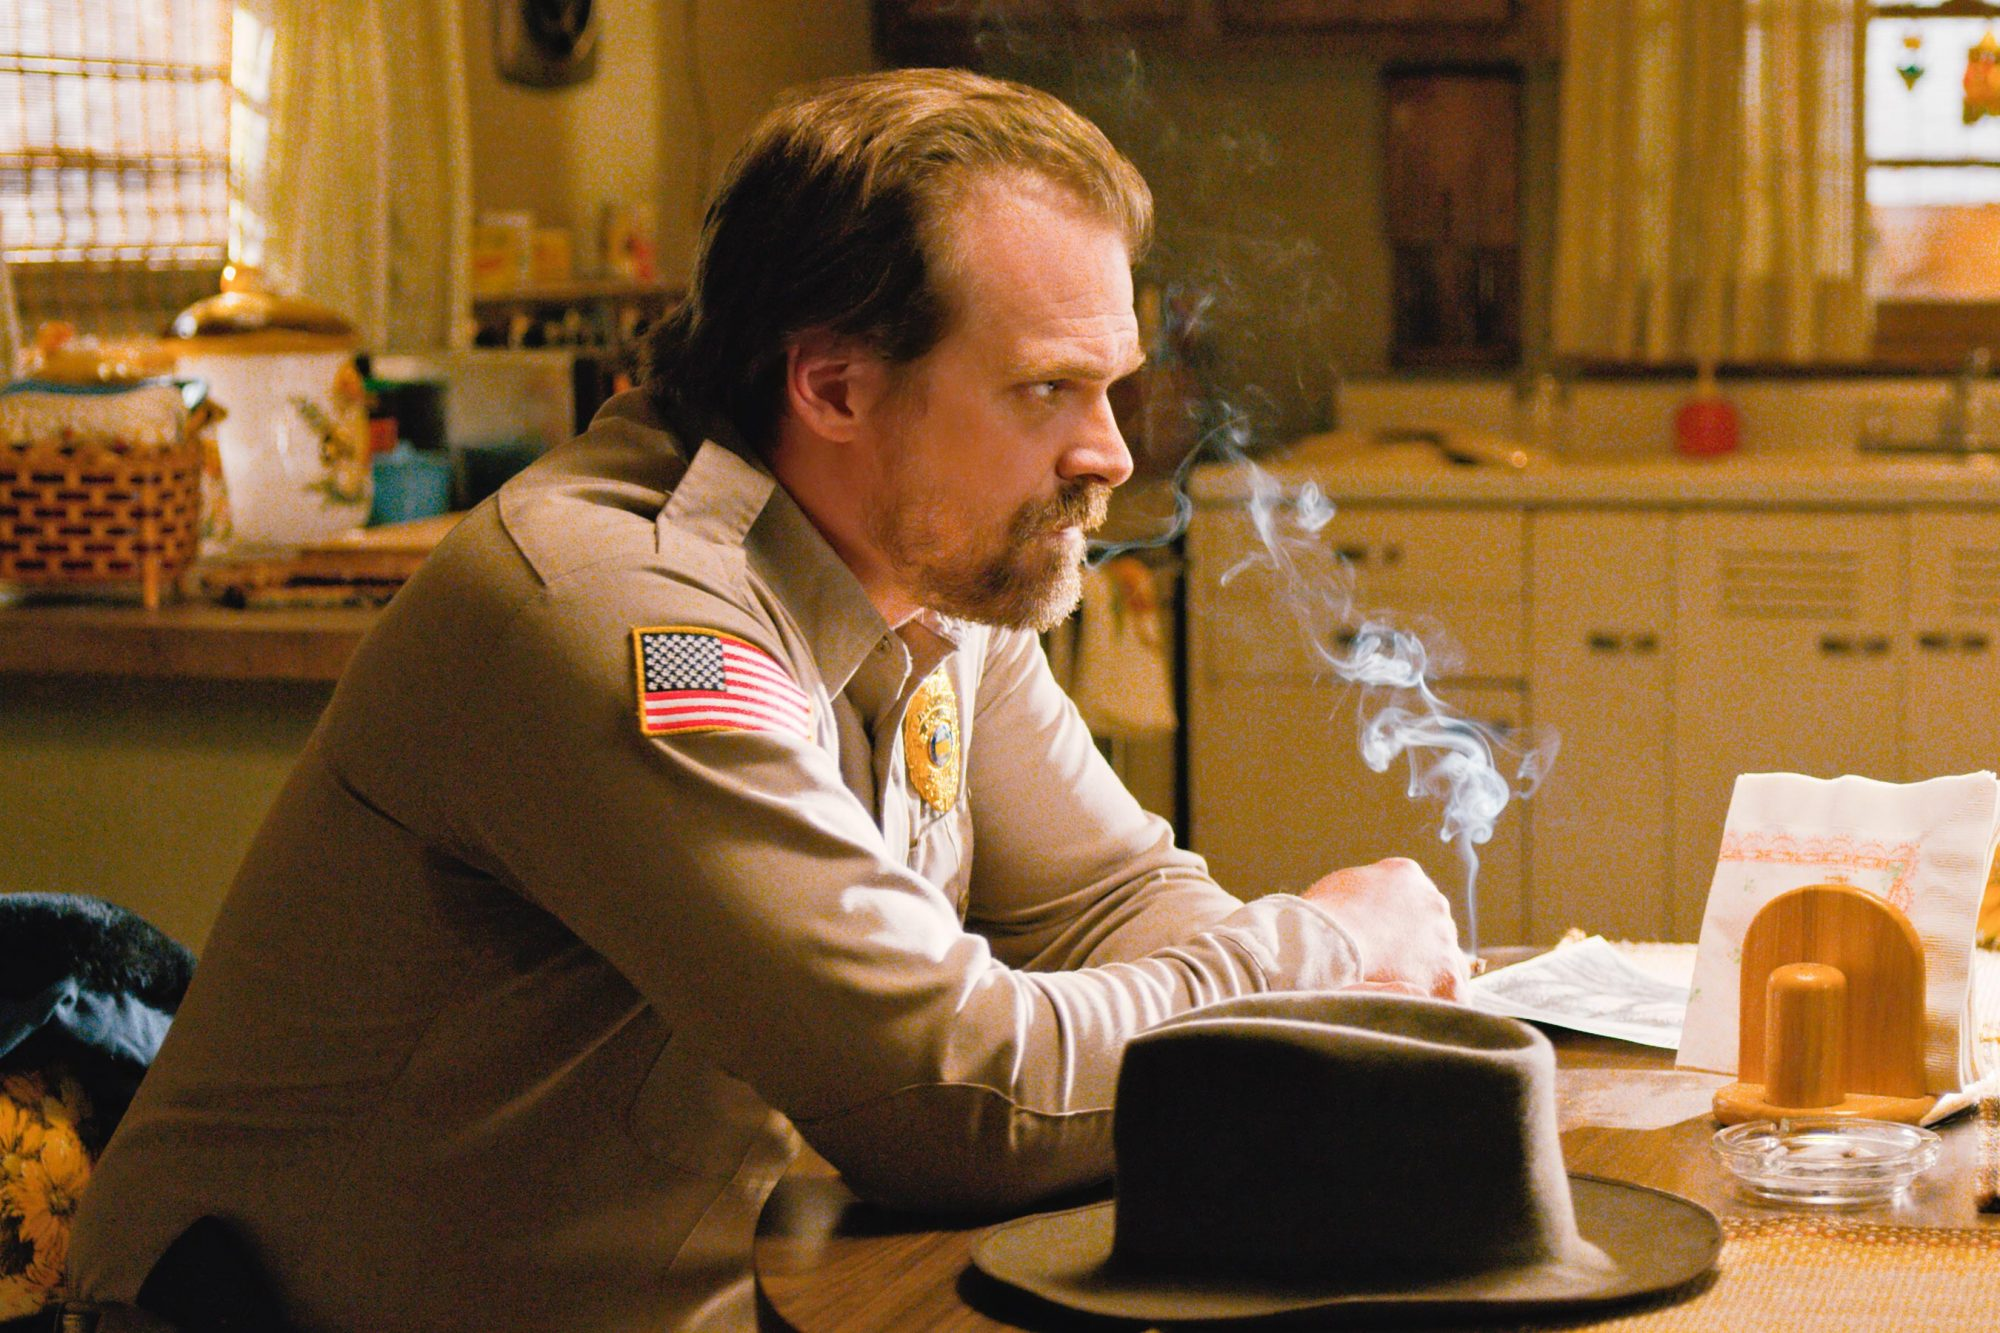 Stranger Things 2 Season 2 David Harbour as Jim Hopper CR: Netflix